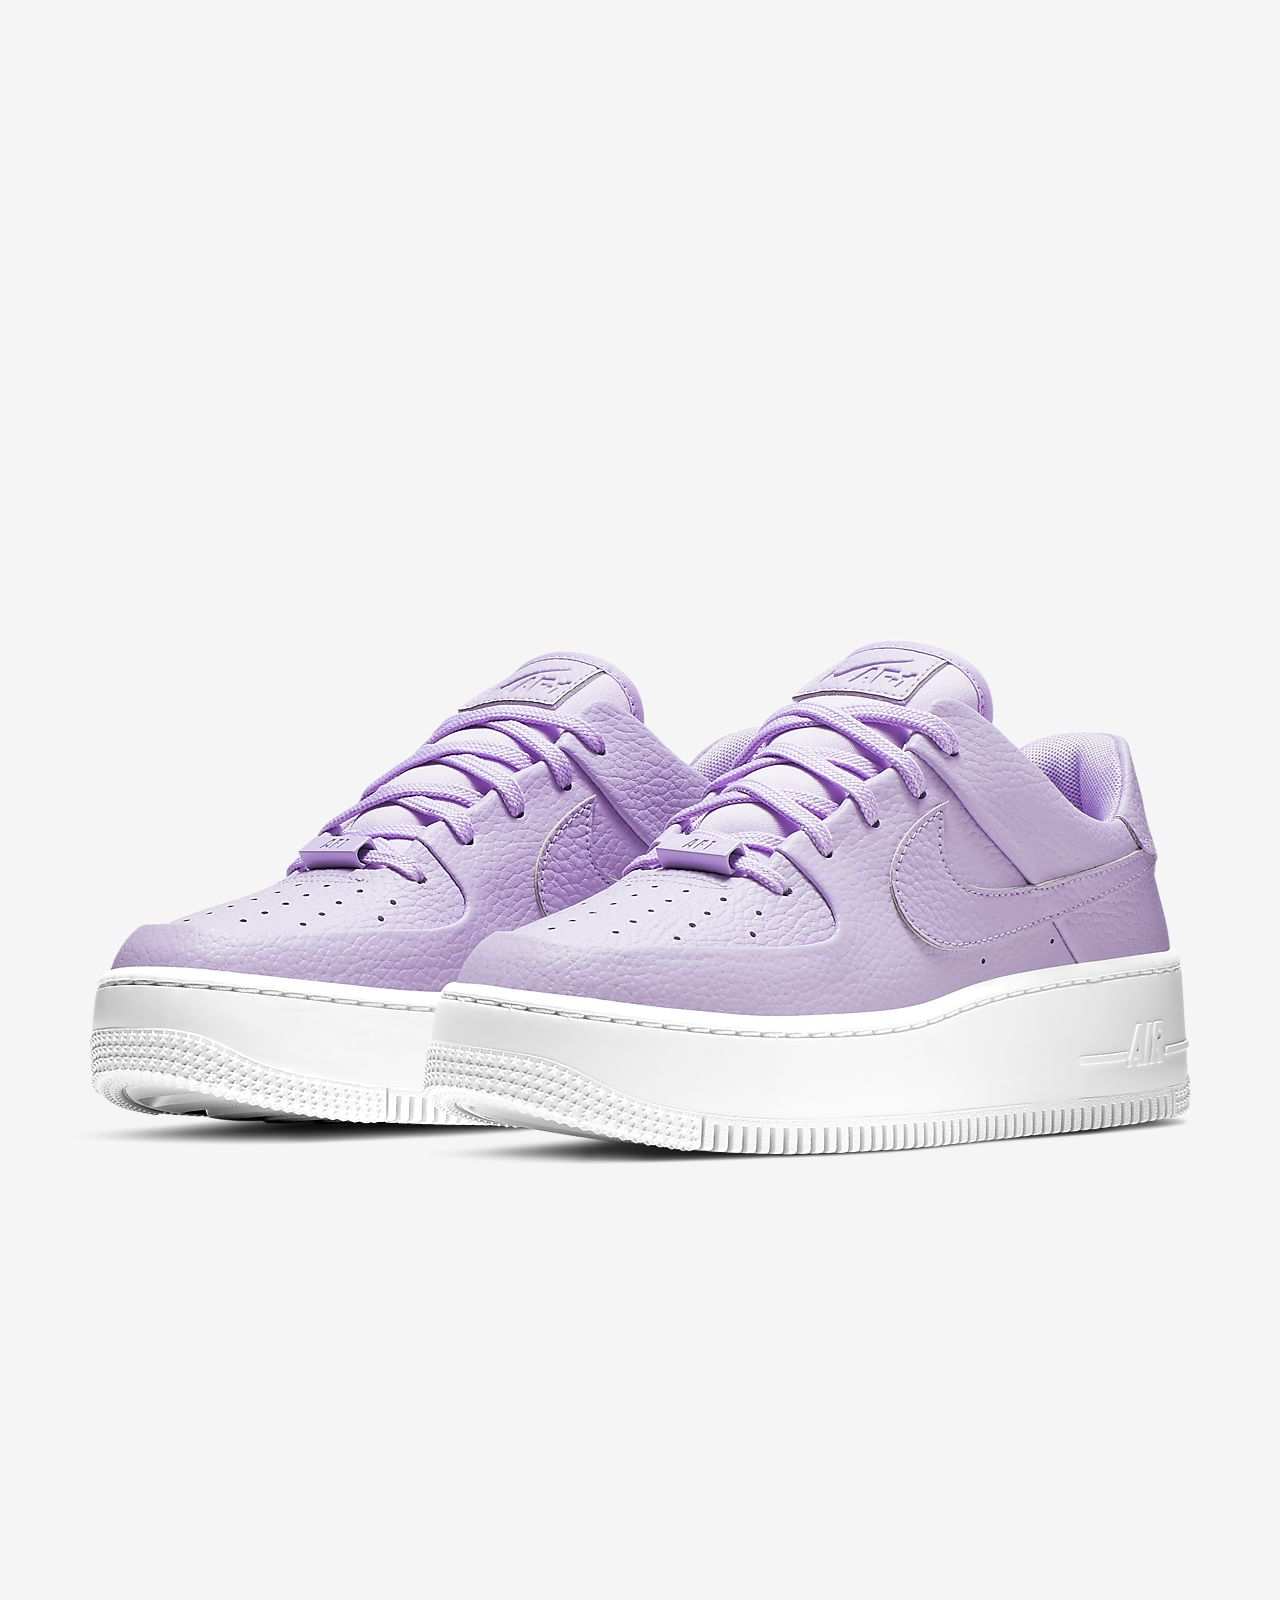 02f8ac6137c5d Nike Air Force 1 Sage Low Zapatillas - Mujer. Nike.com ES